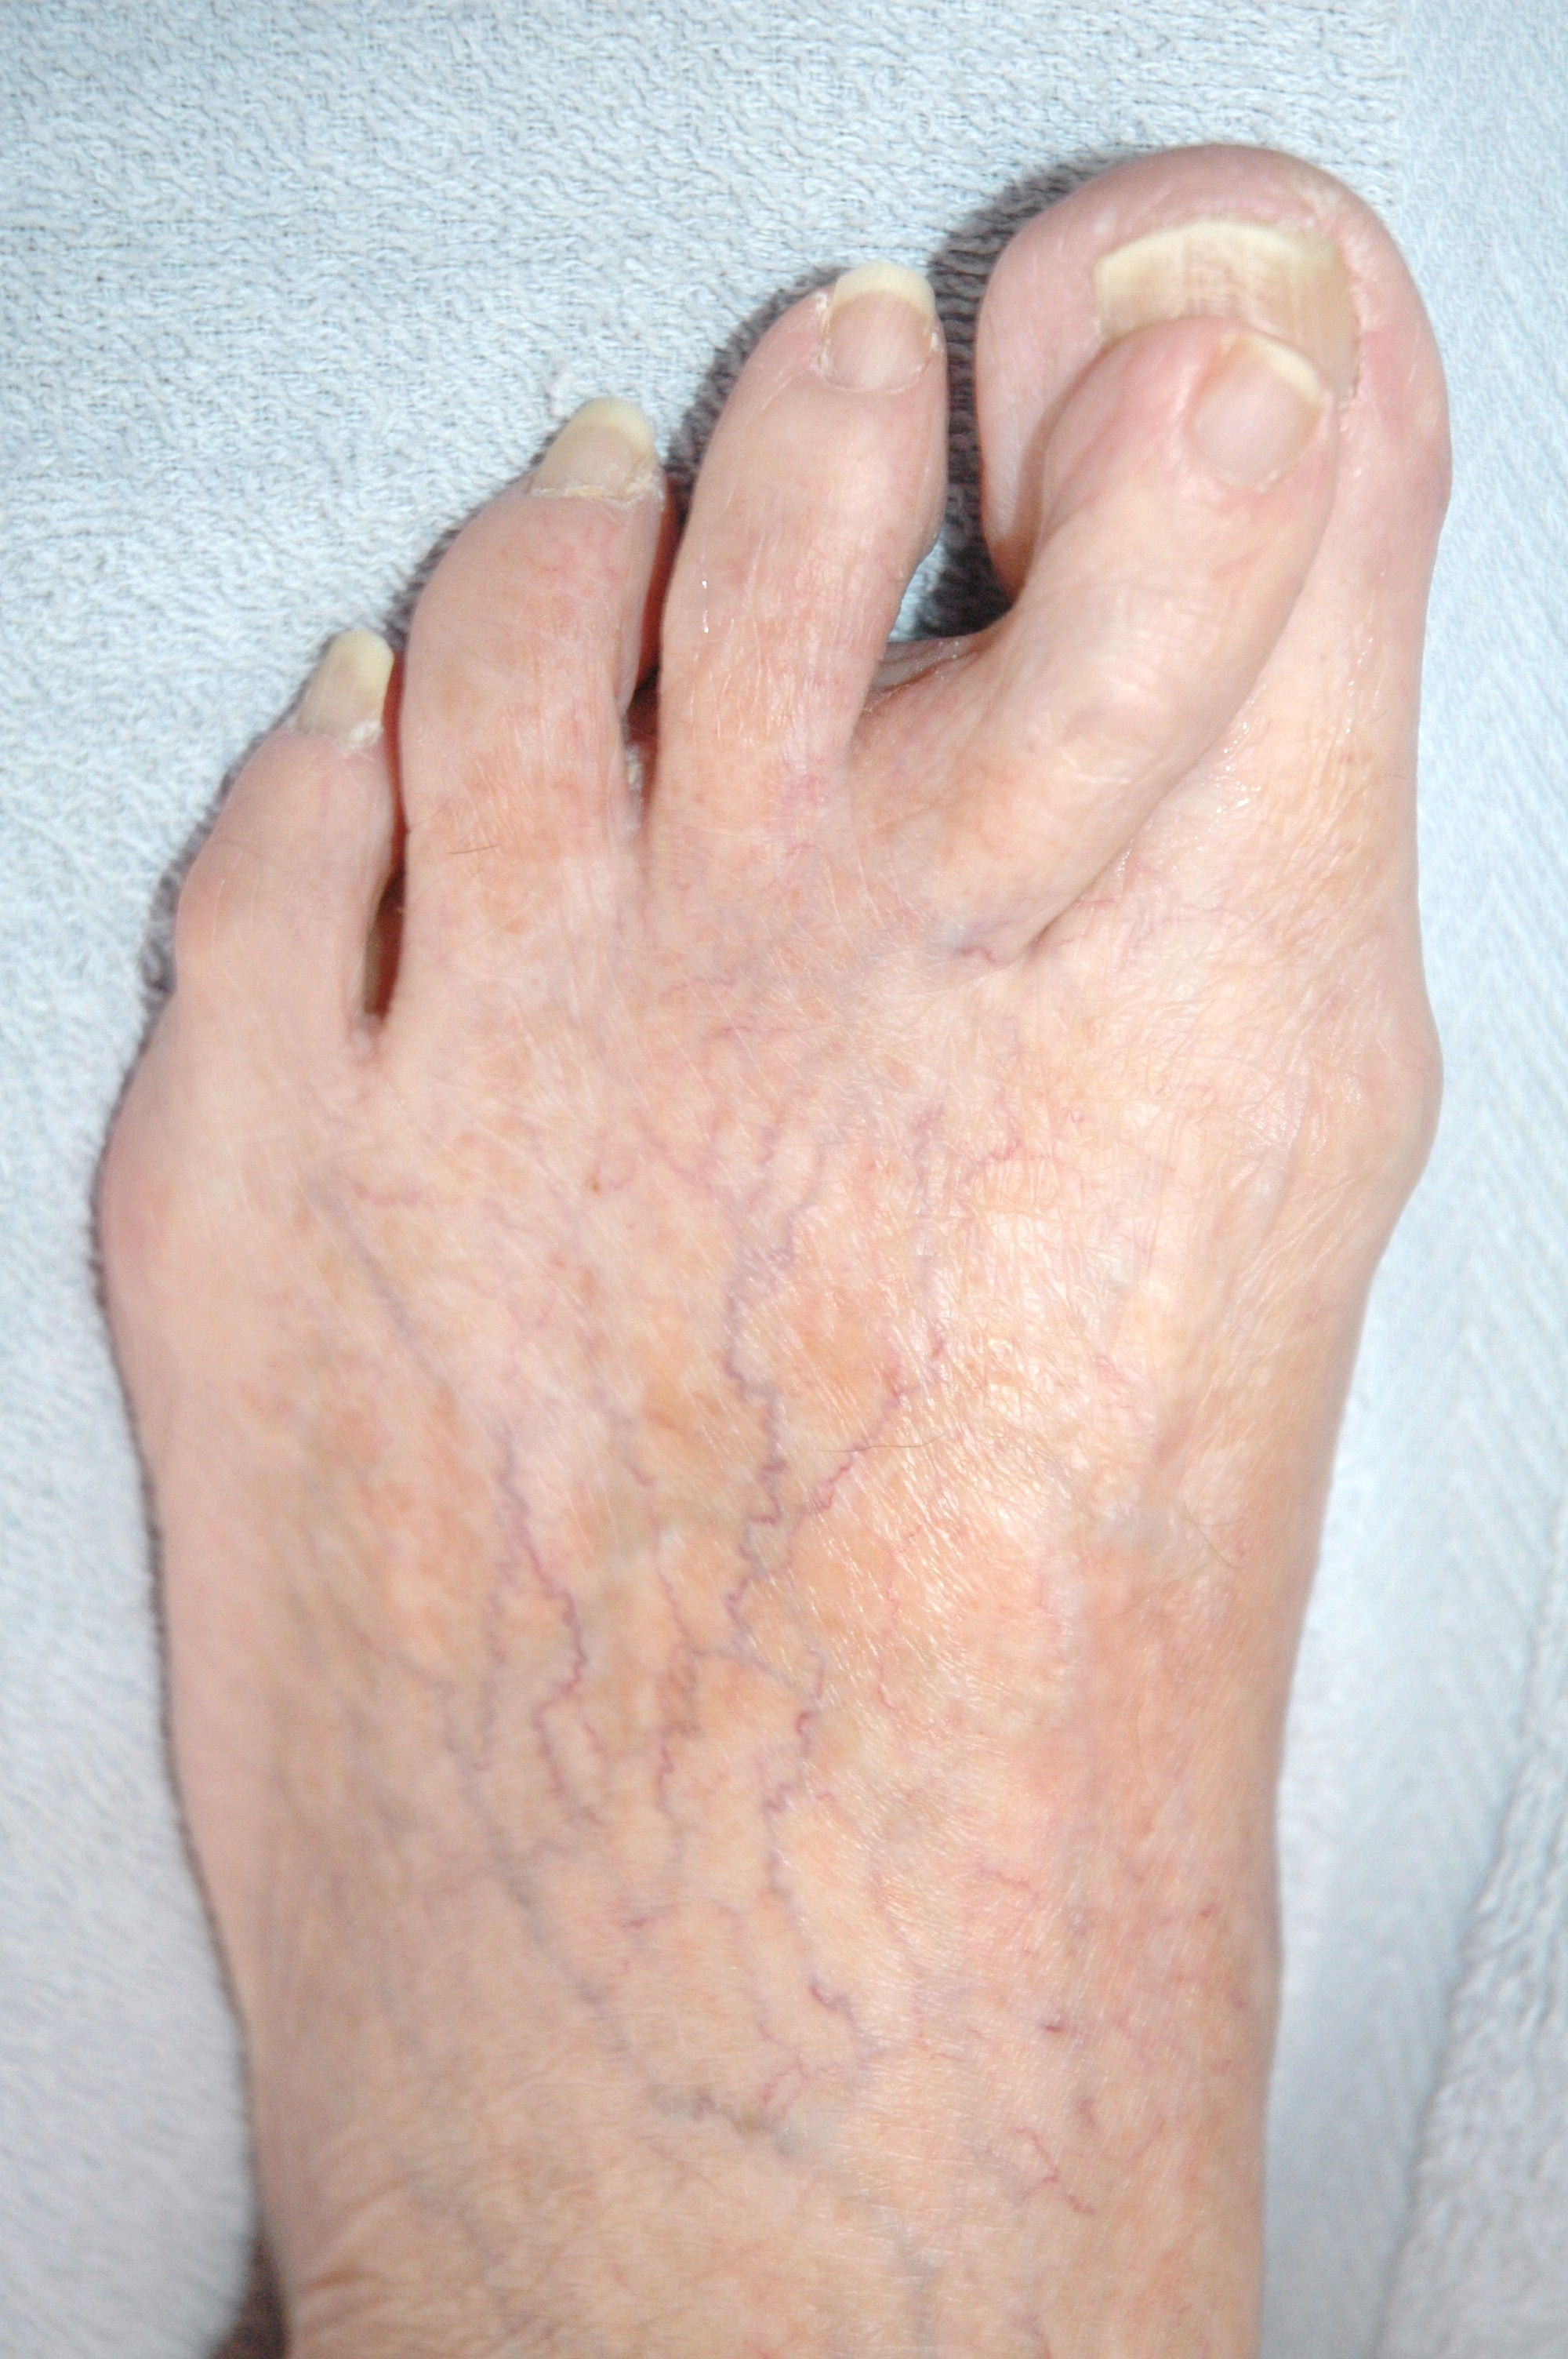 Mortons toe what is it what causes it how to treat it bunion solutioingenieria Images